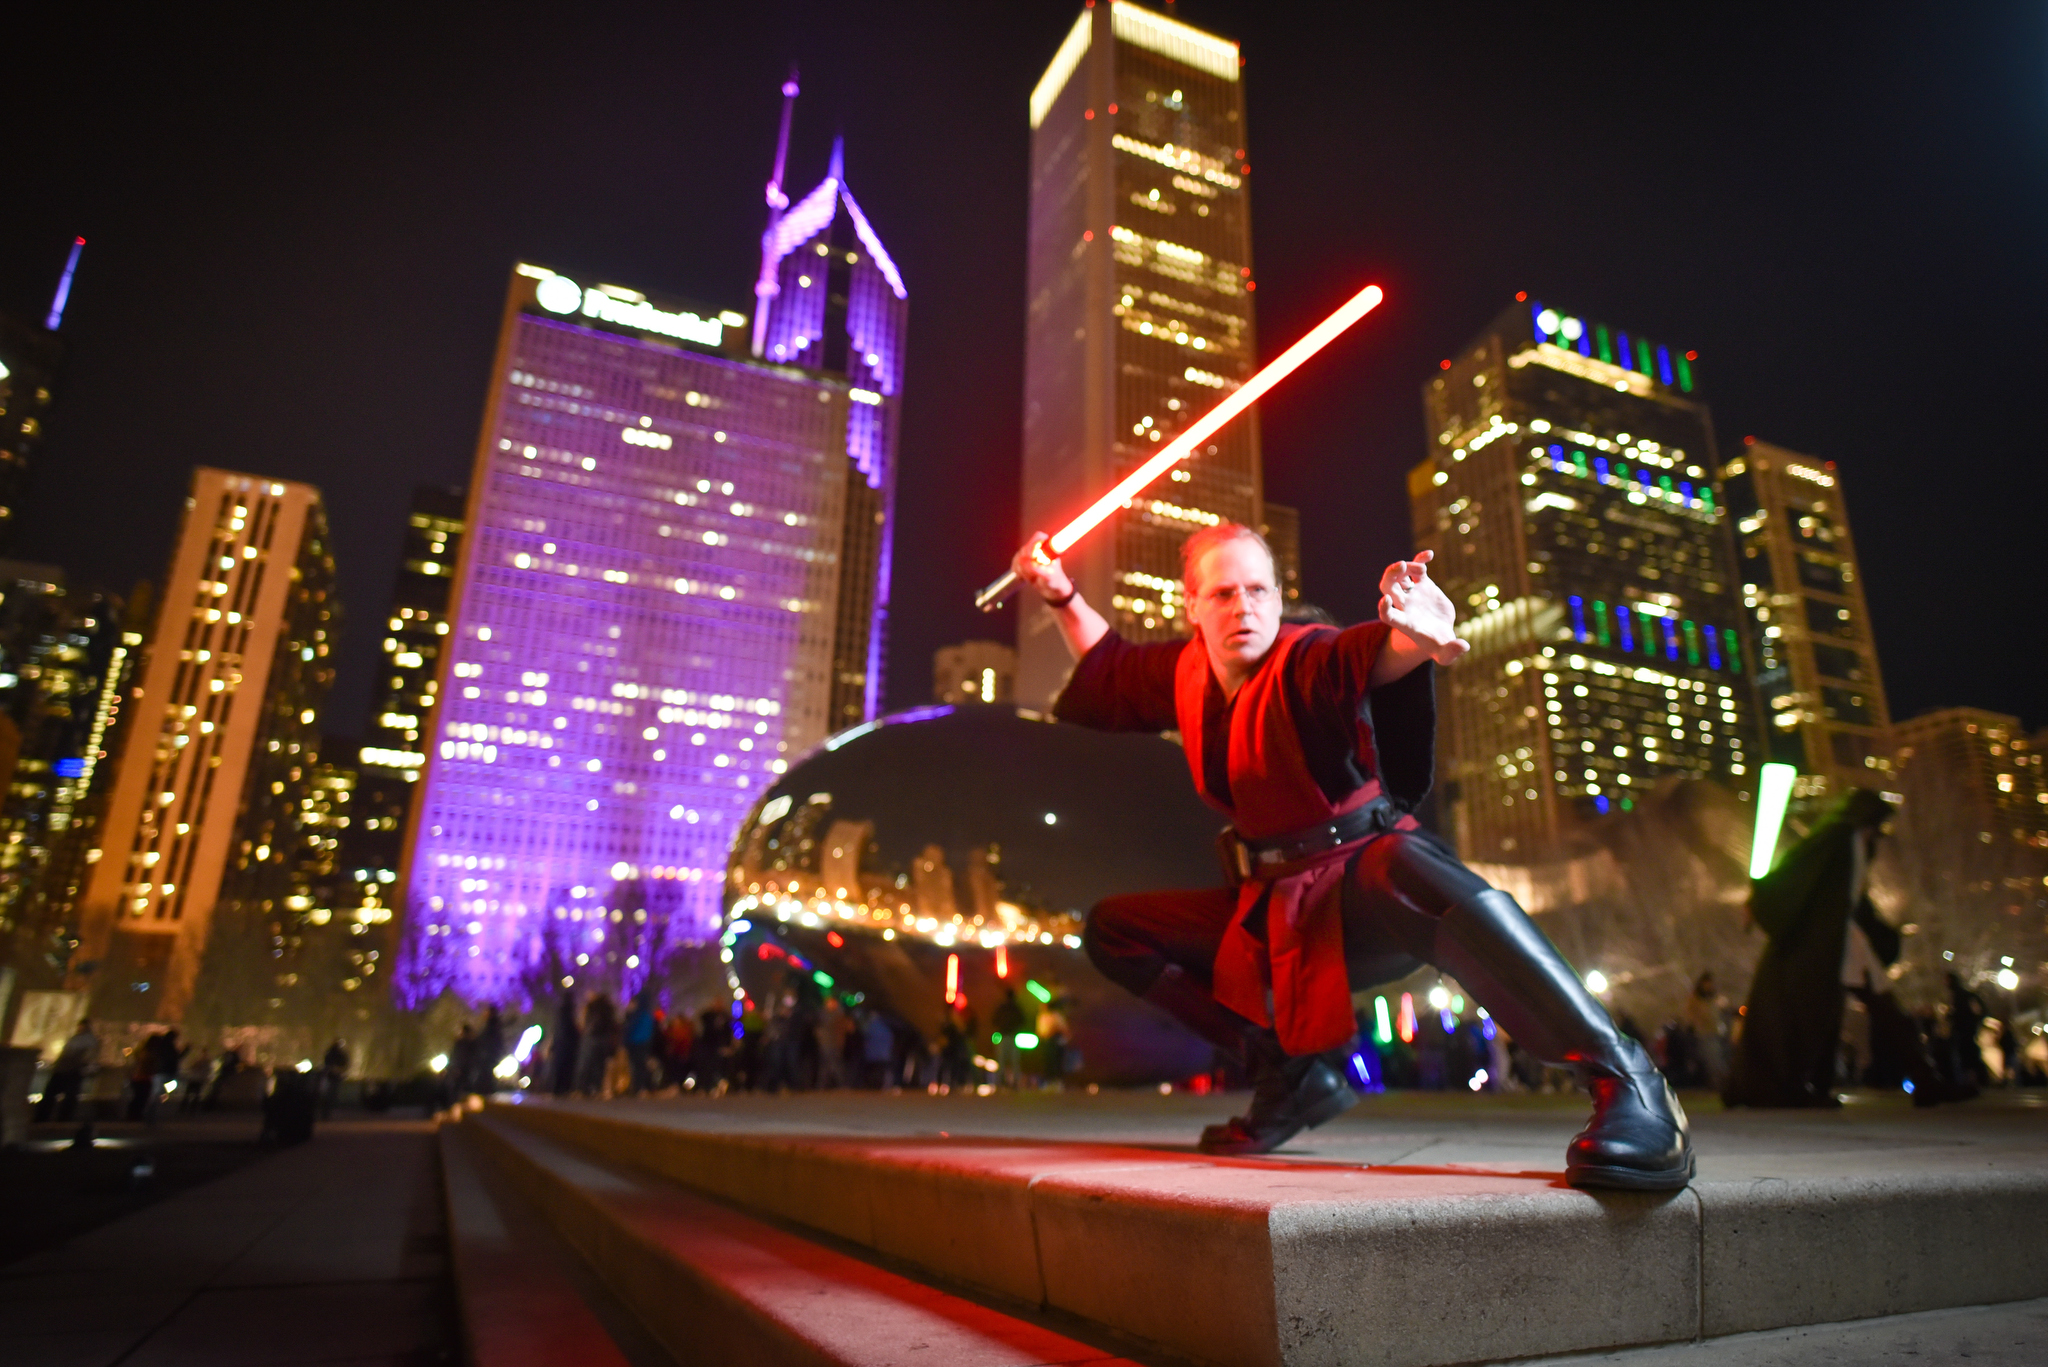 2019.04.14 - Star Wars Celebration Chicago 288869.JPG